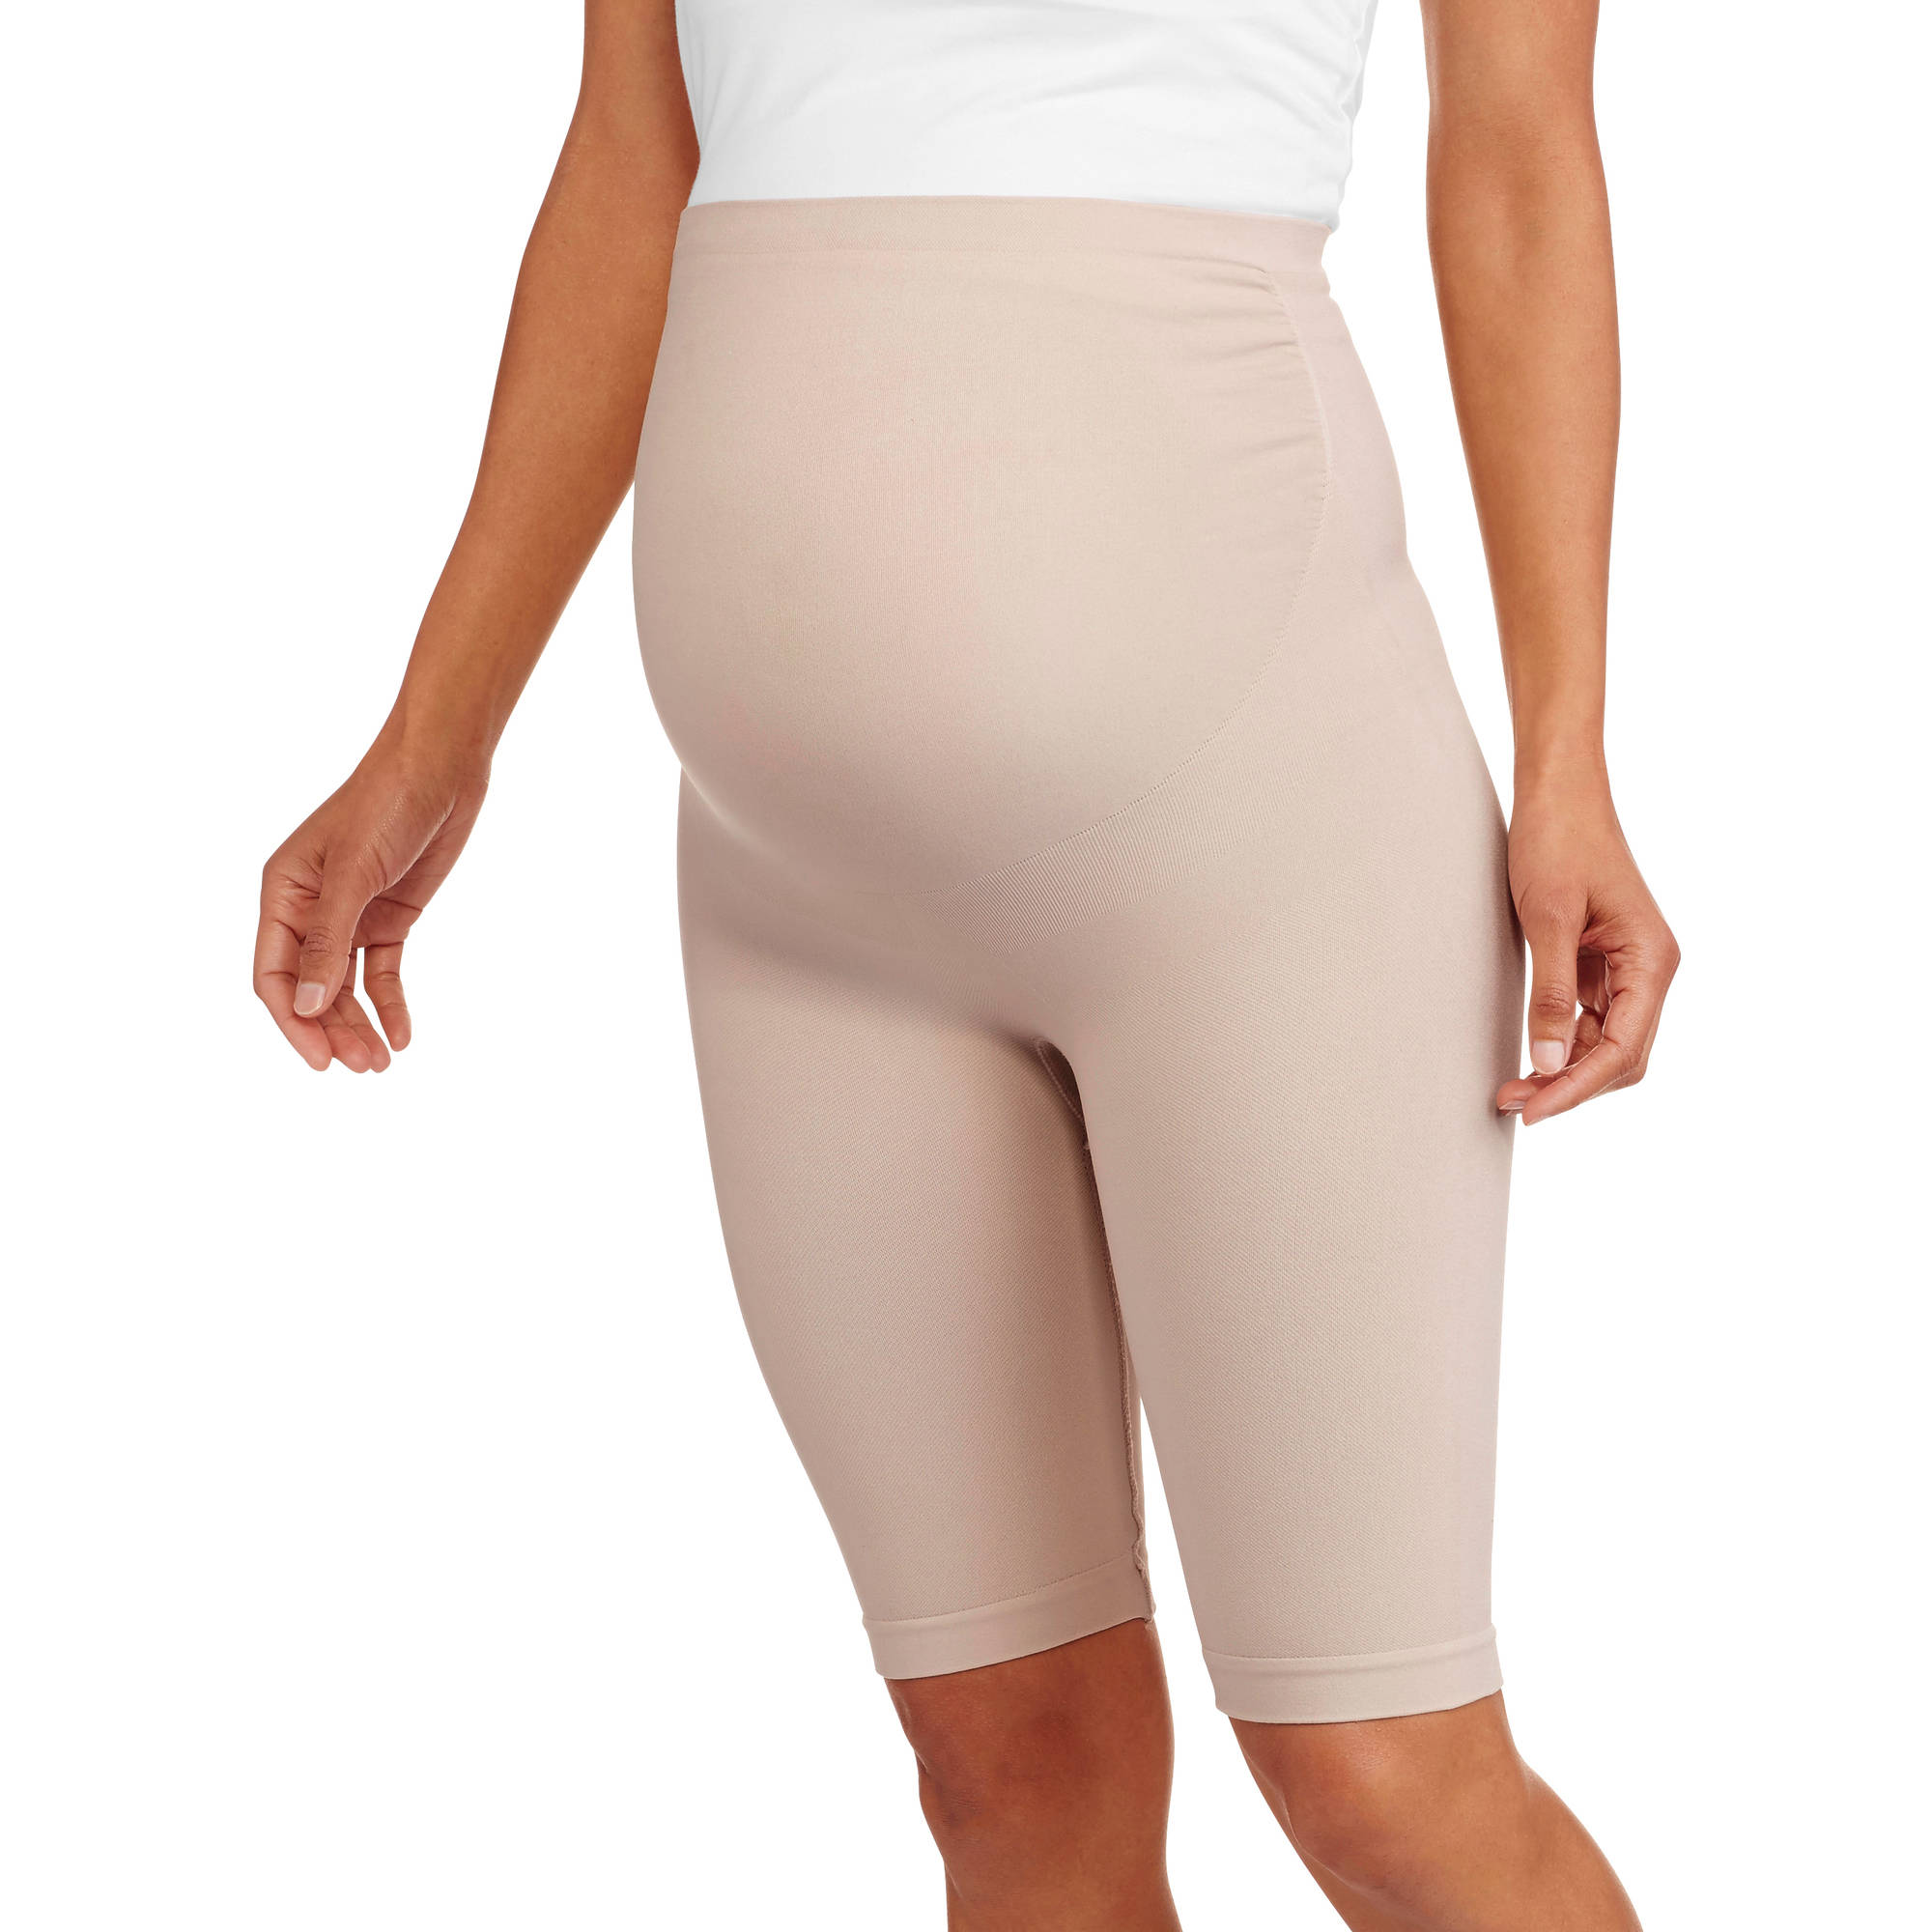 "Nurture by Lamaze Maternity Over-the-Belly 9"" Seamless Thigh Shaper and Support"